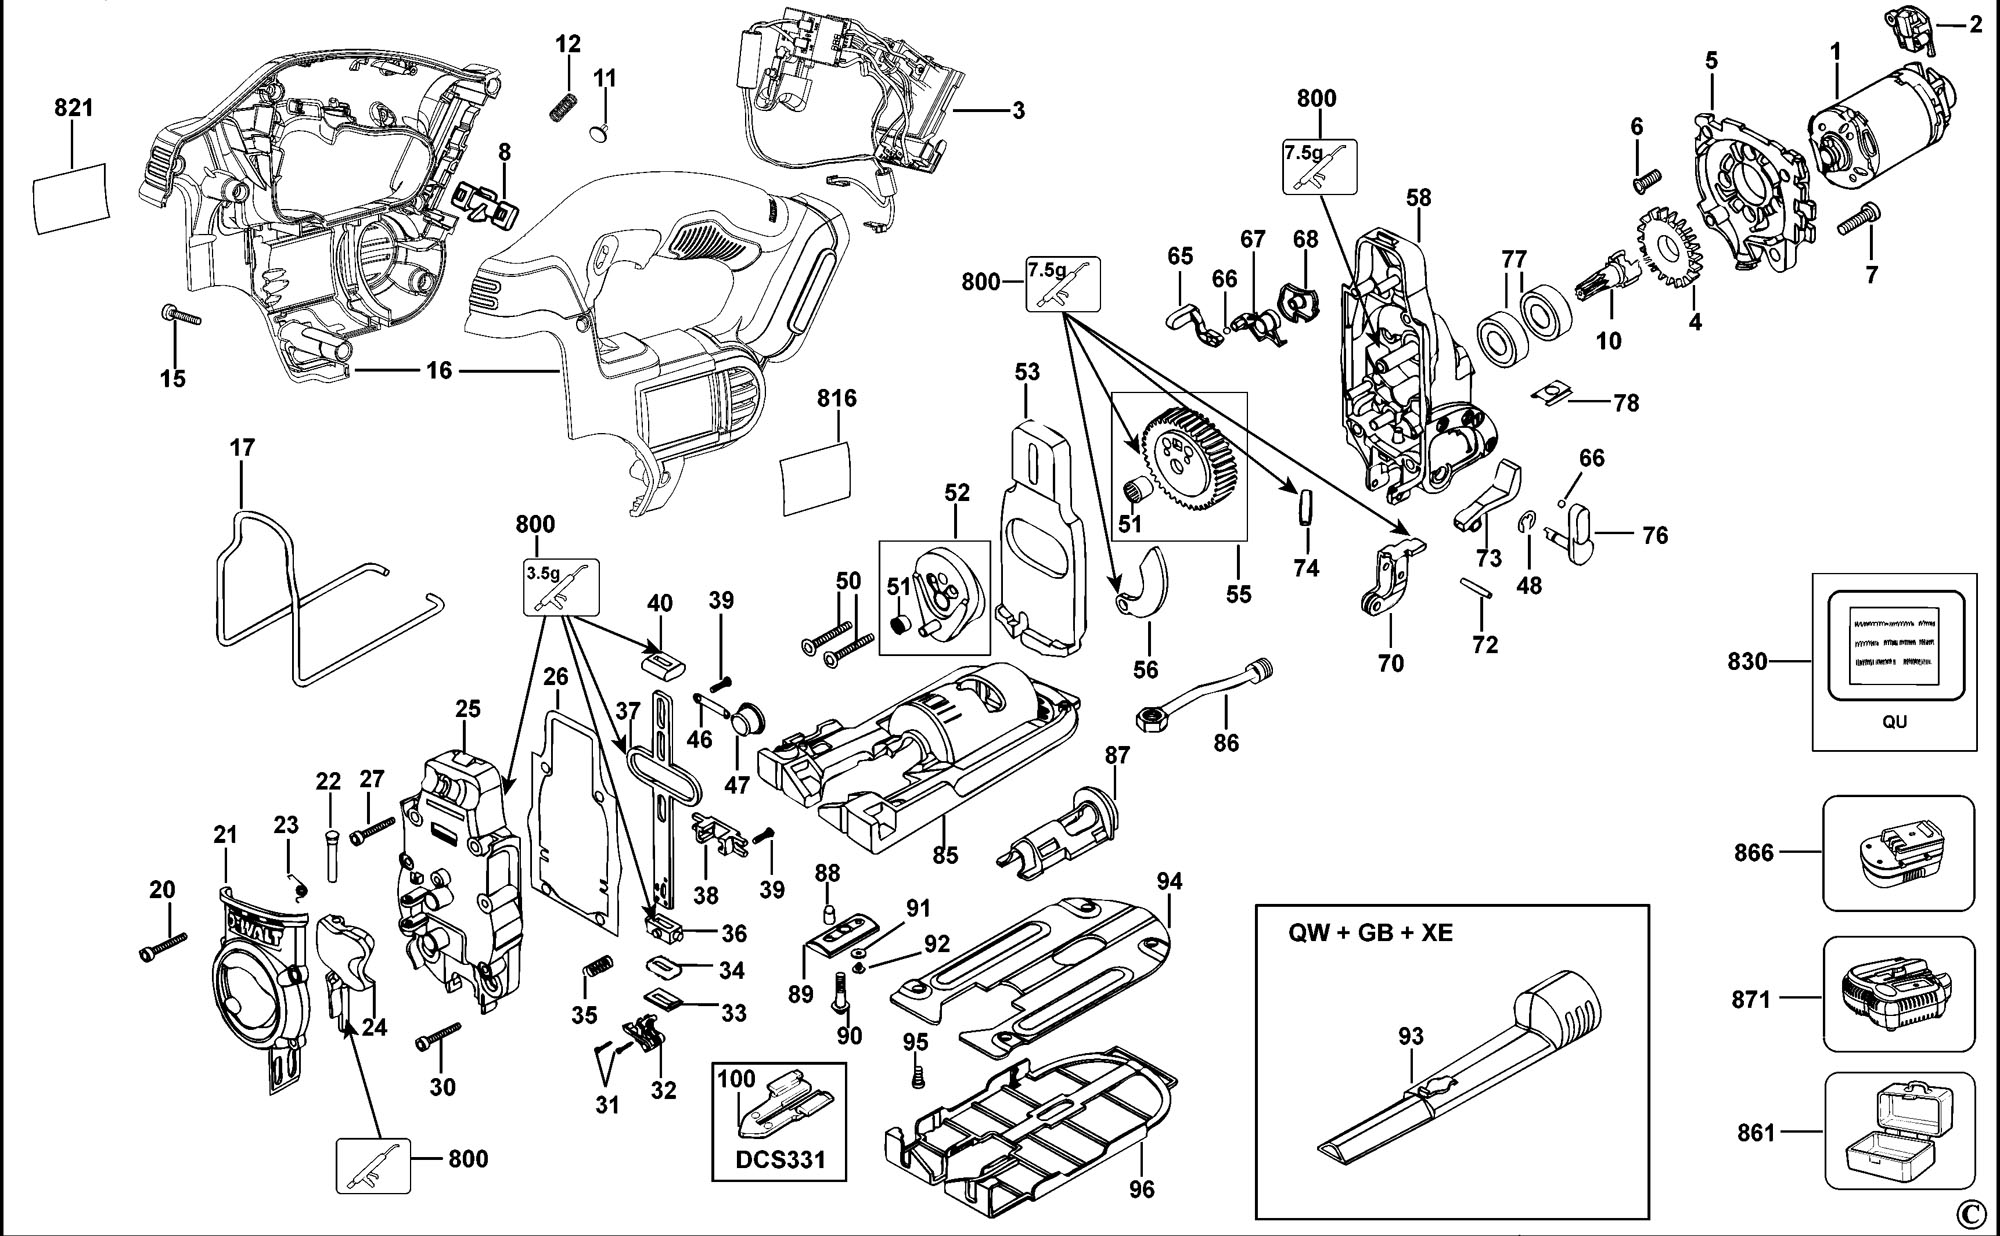 1966 Ford Mustang Belts Diagram Html on 1966 porsche 912 wiring diagram